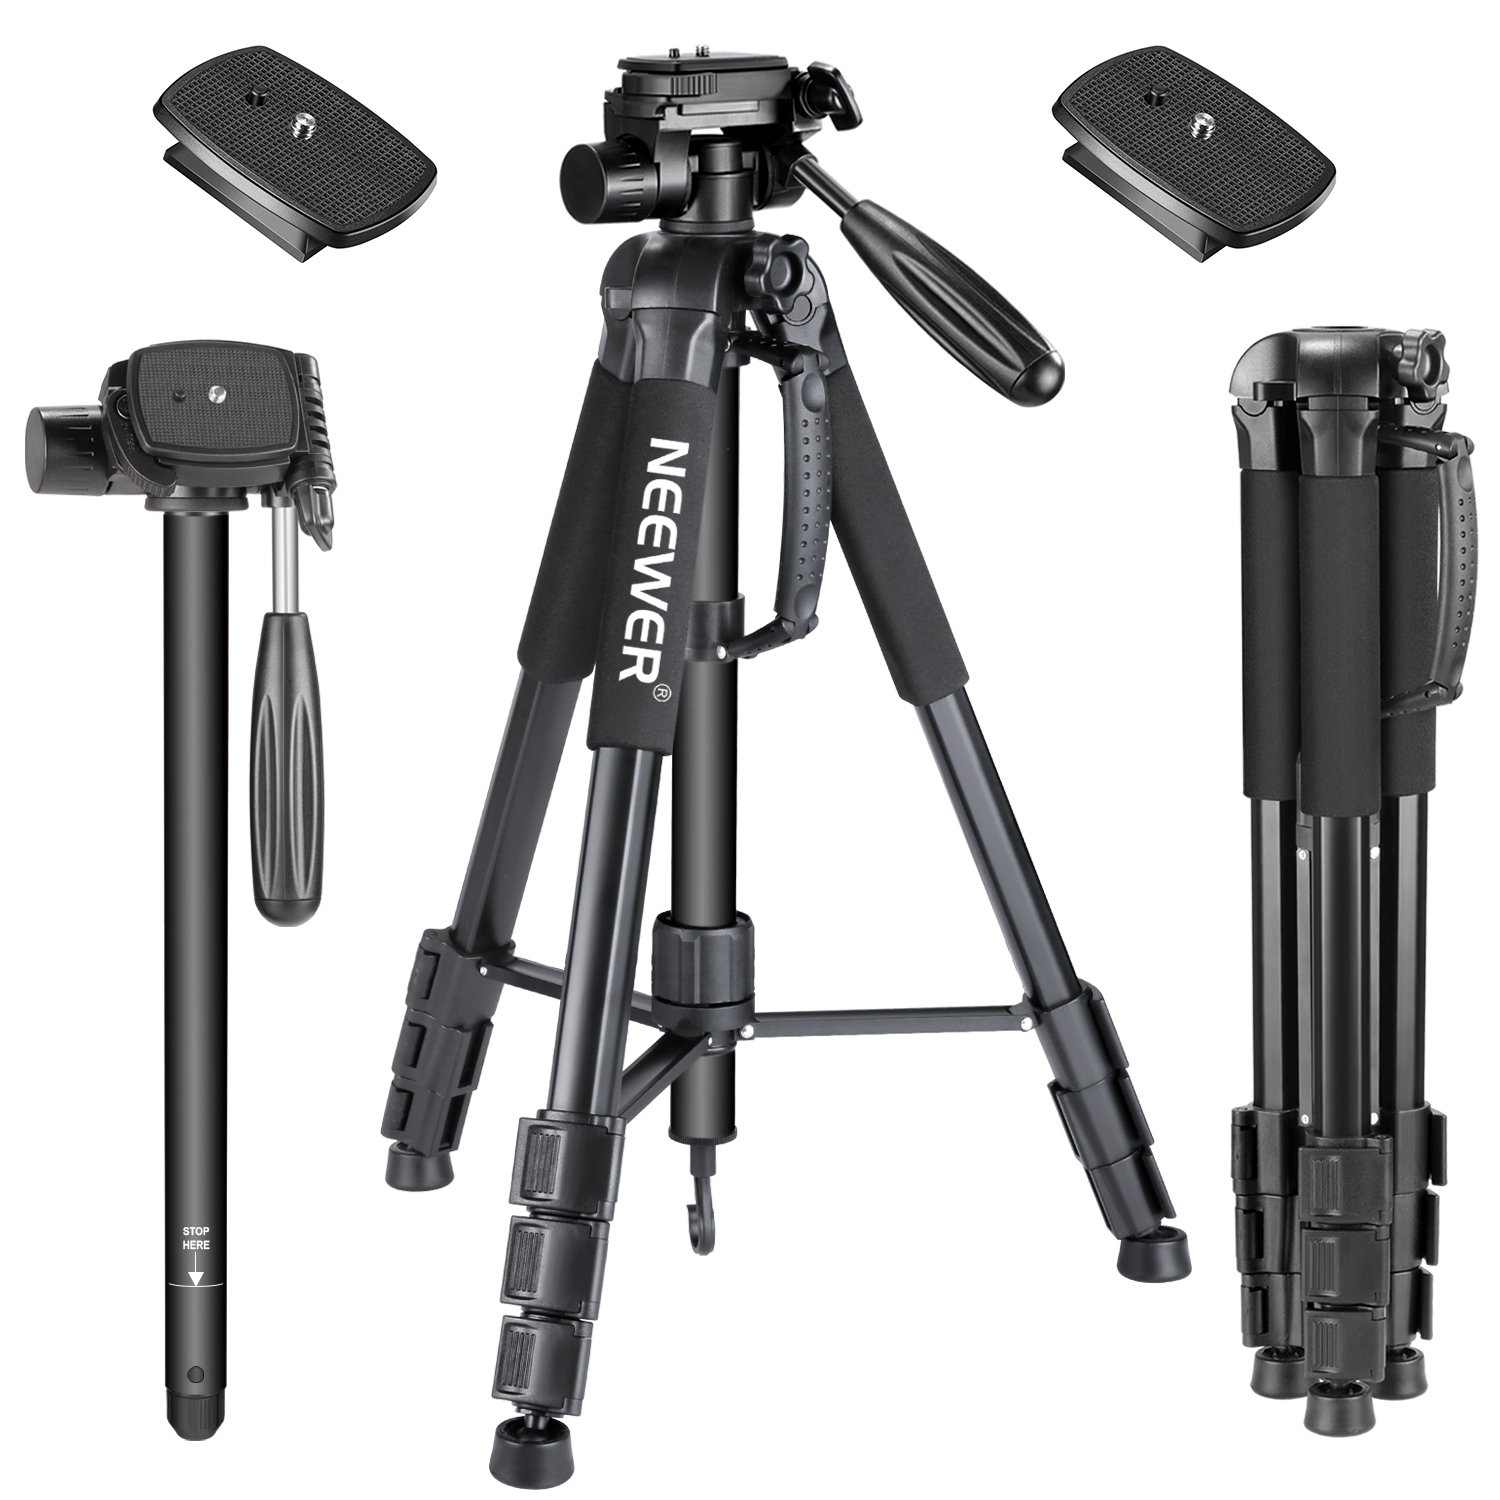 Neewer 70inches/177centimeters Aluminium Camera Tripod Monopod with 3-Way Swivel Pan Head,2-Pack Quick Shoe Plate,Bag for DSLR Camera,DV Video Camcorder,Load up to 8.8 pounds/4 kilograms Black(SAB264) by Neewer